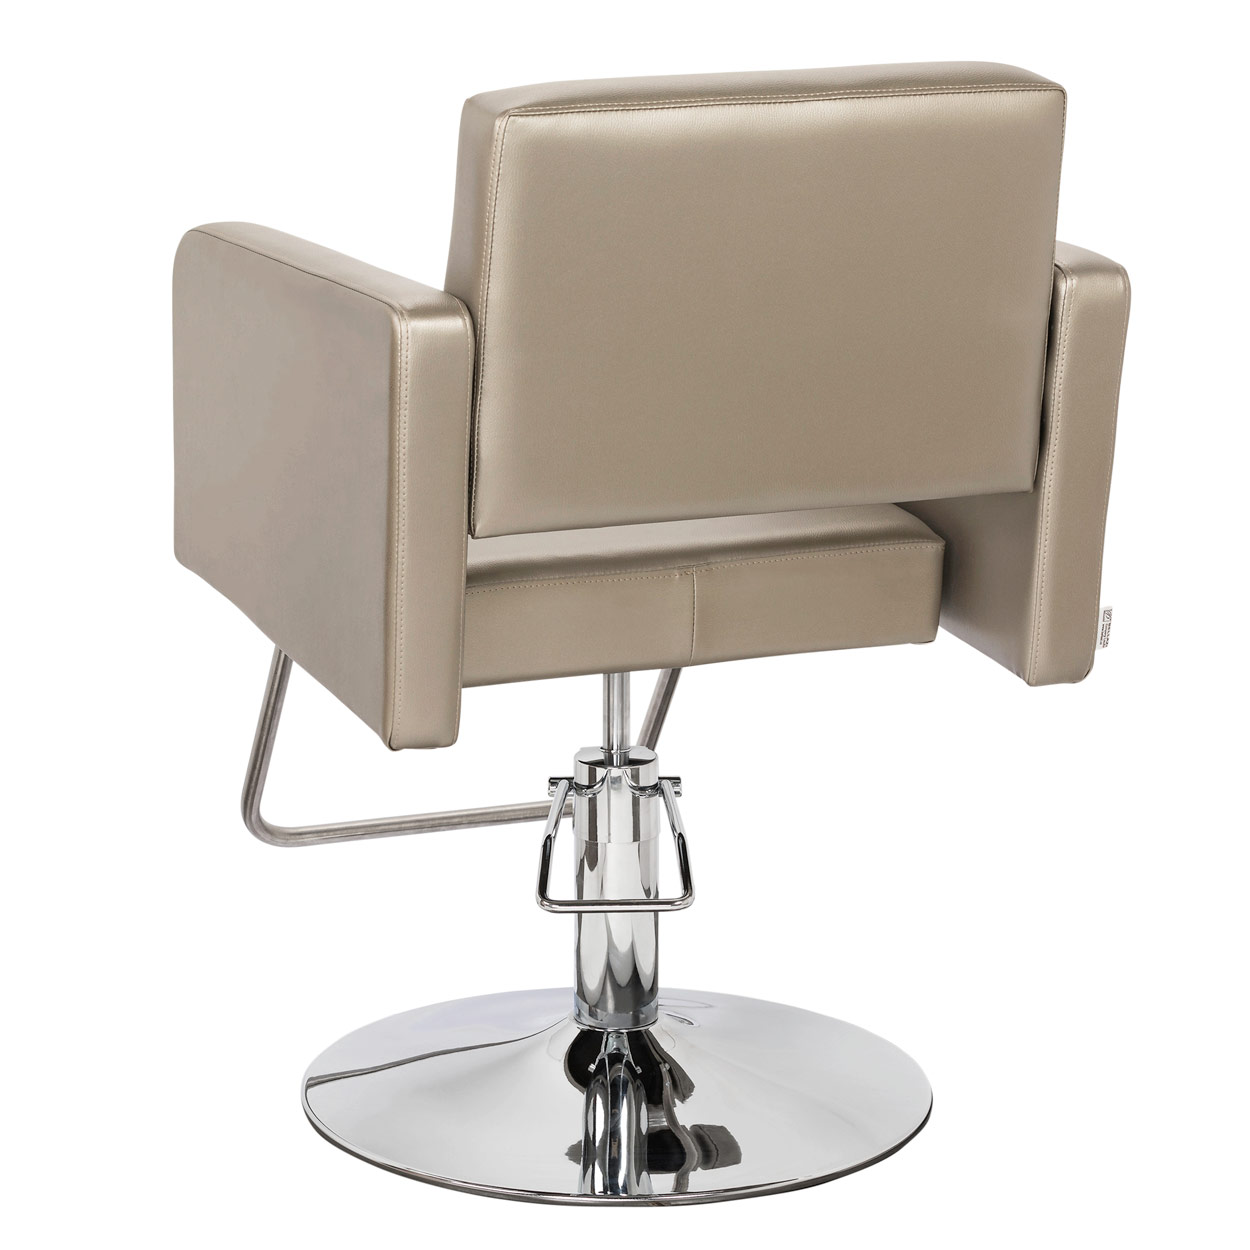 Custom Modin Hair Salon Styling Chair alternative product image 4